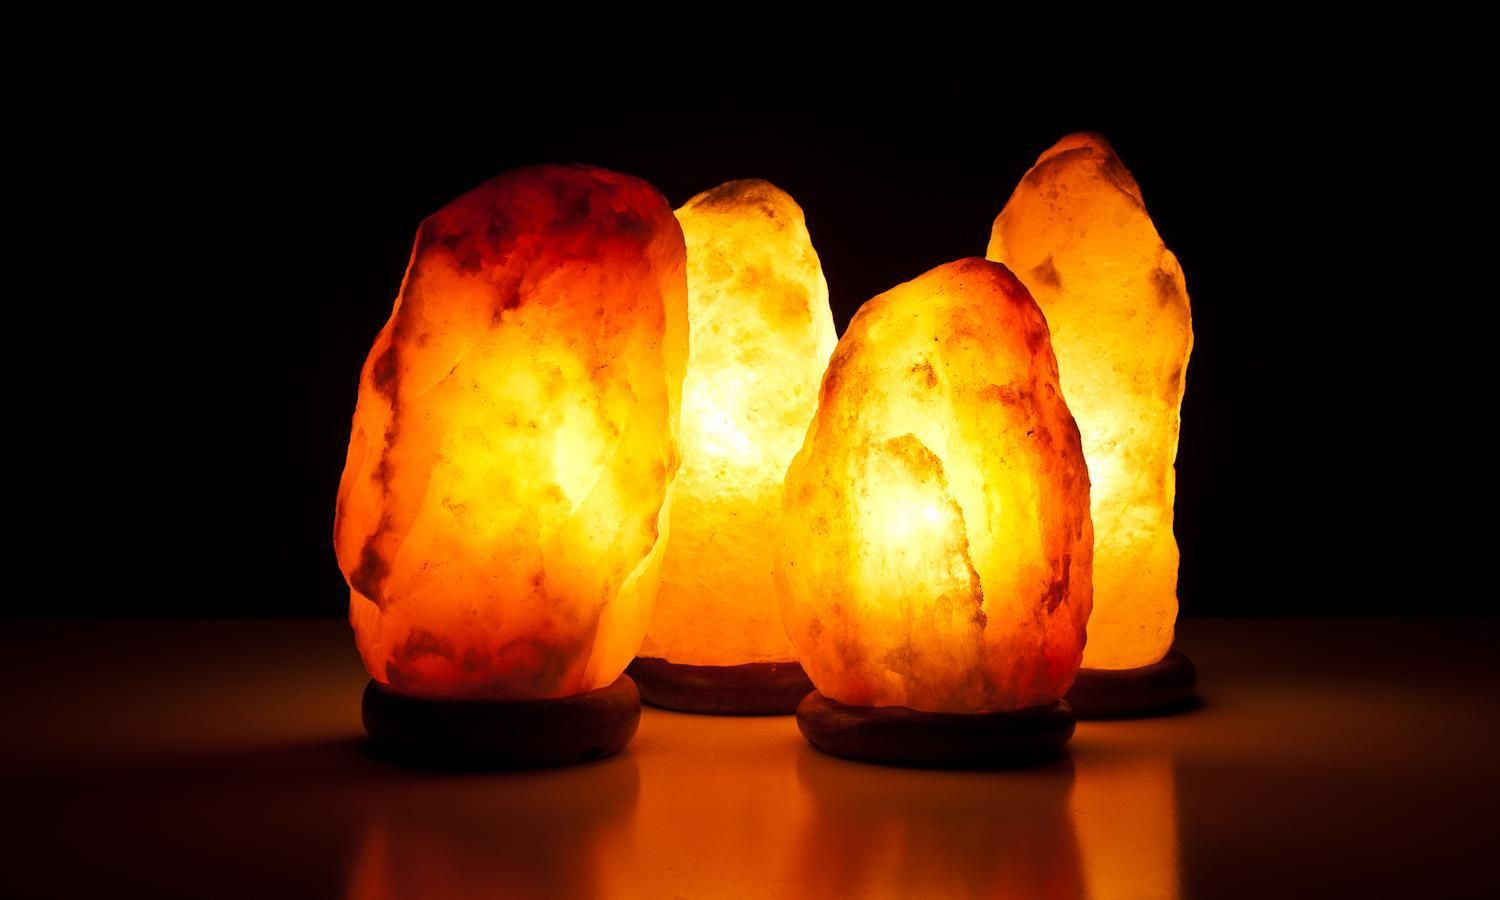 Feng Shui Incorporating The Elements In Your House Salt Lamp Benefits Himalayan Salt Lamp Benefits Himalayan Salt Lamp